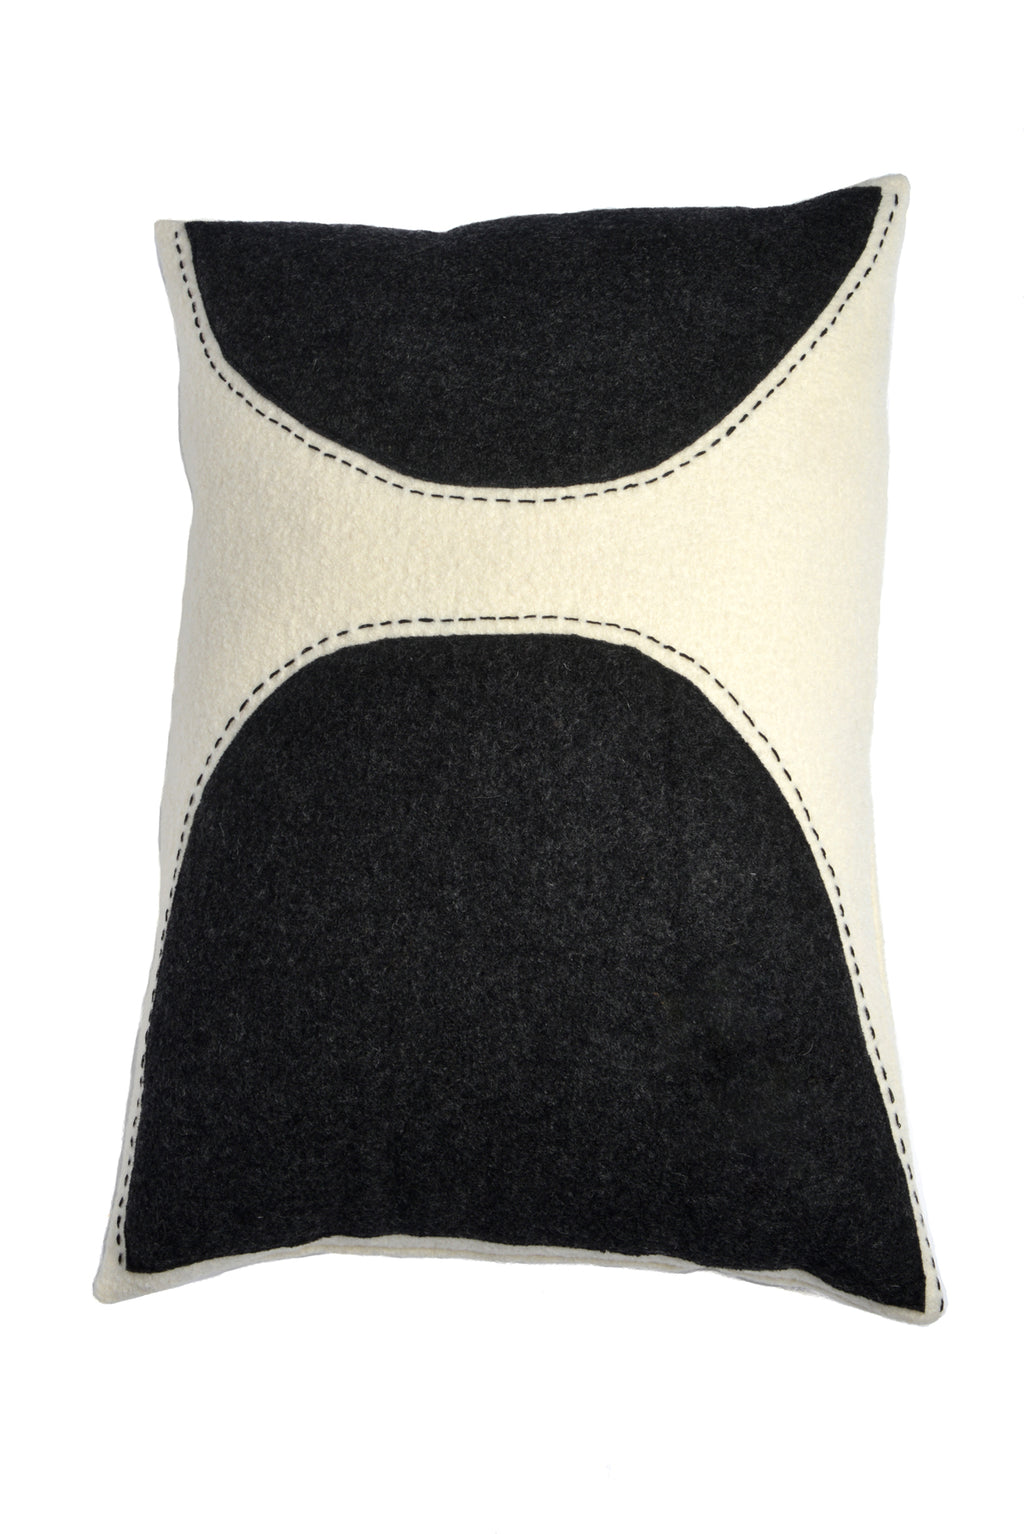 Bertha - Wool Appliqué Cushion in Black and White